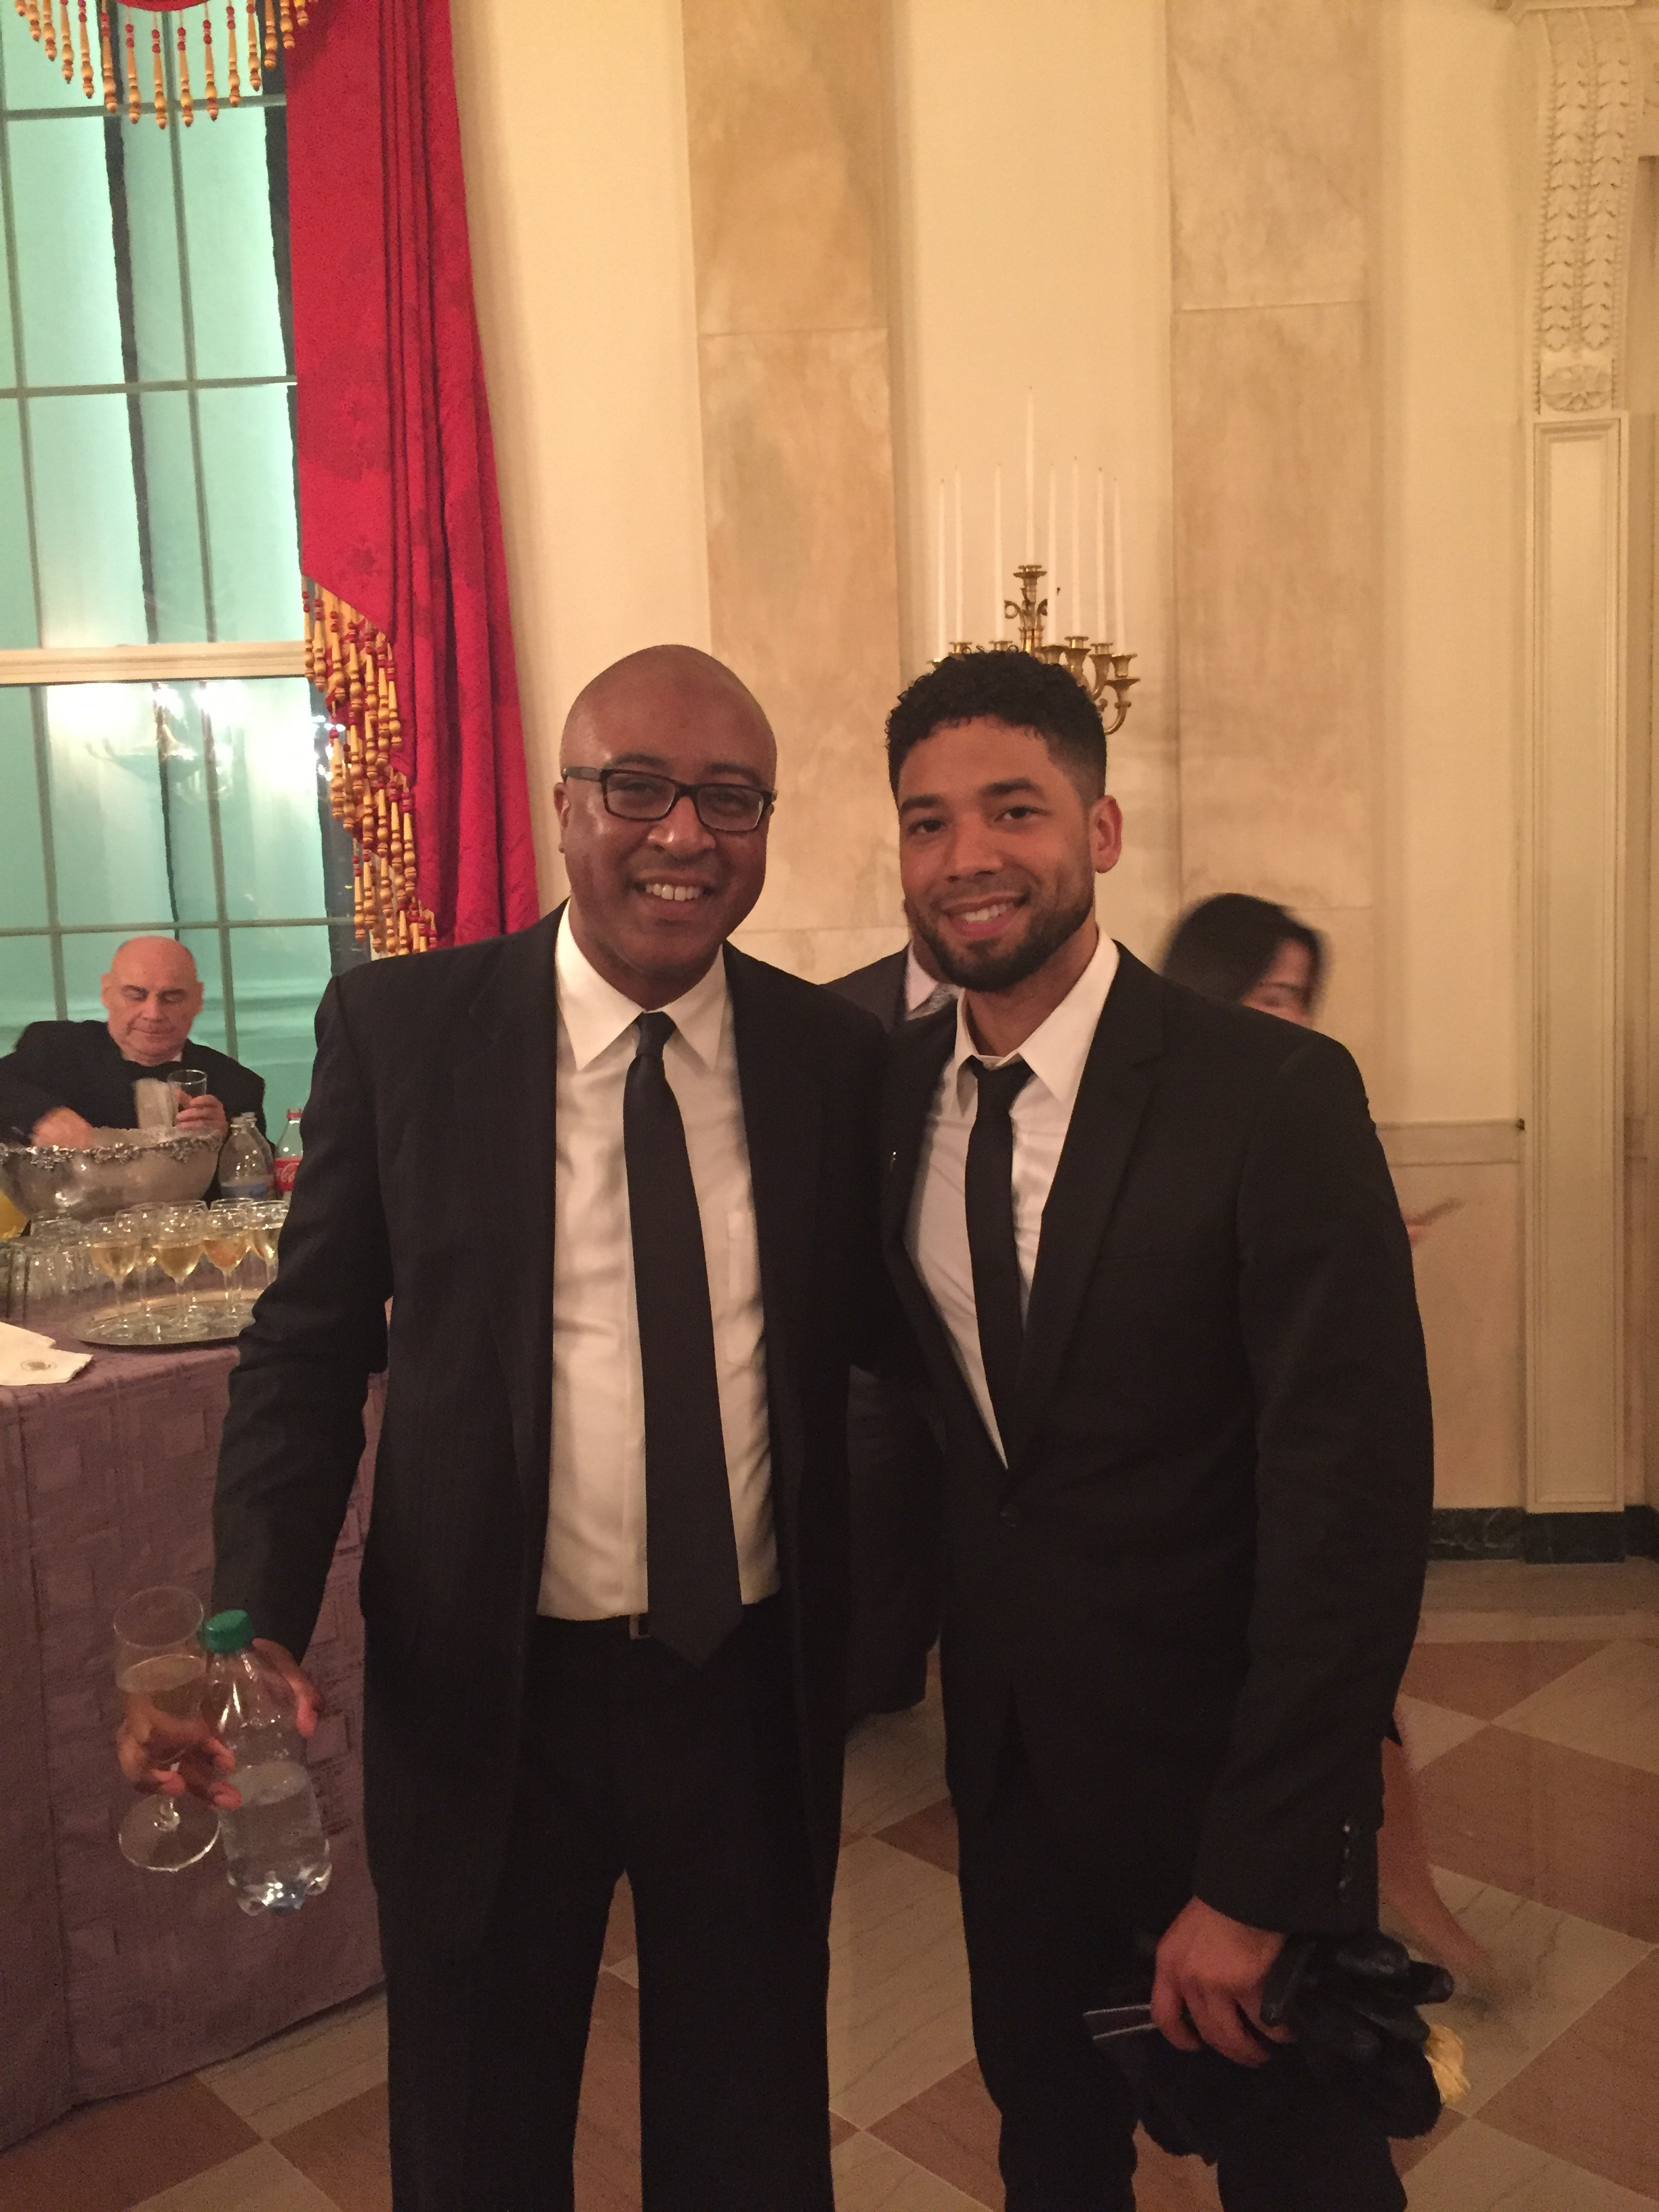 With Jussie Smollett in The White House